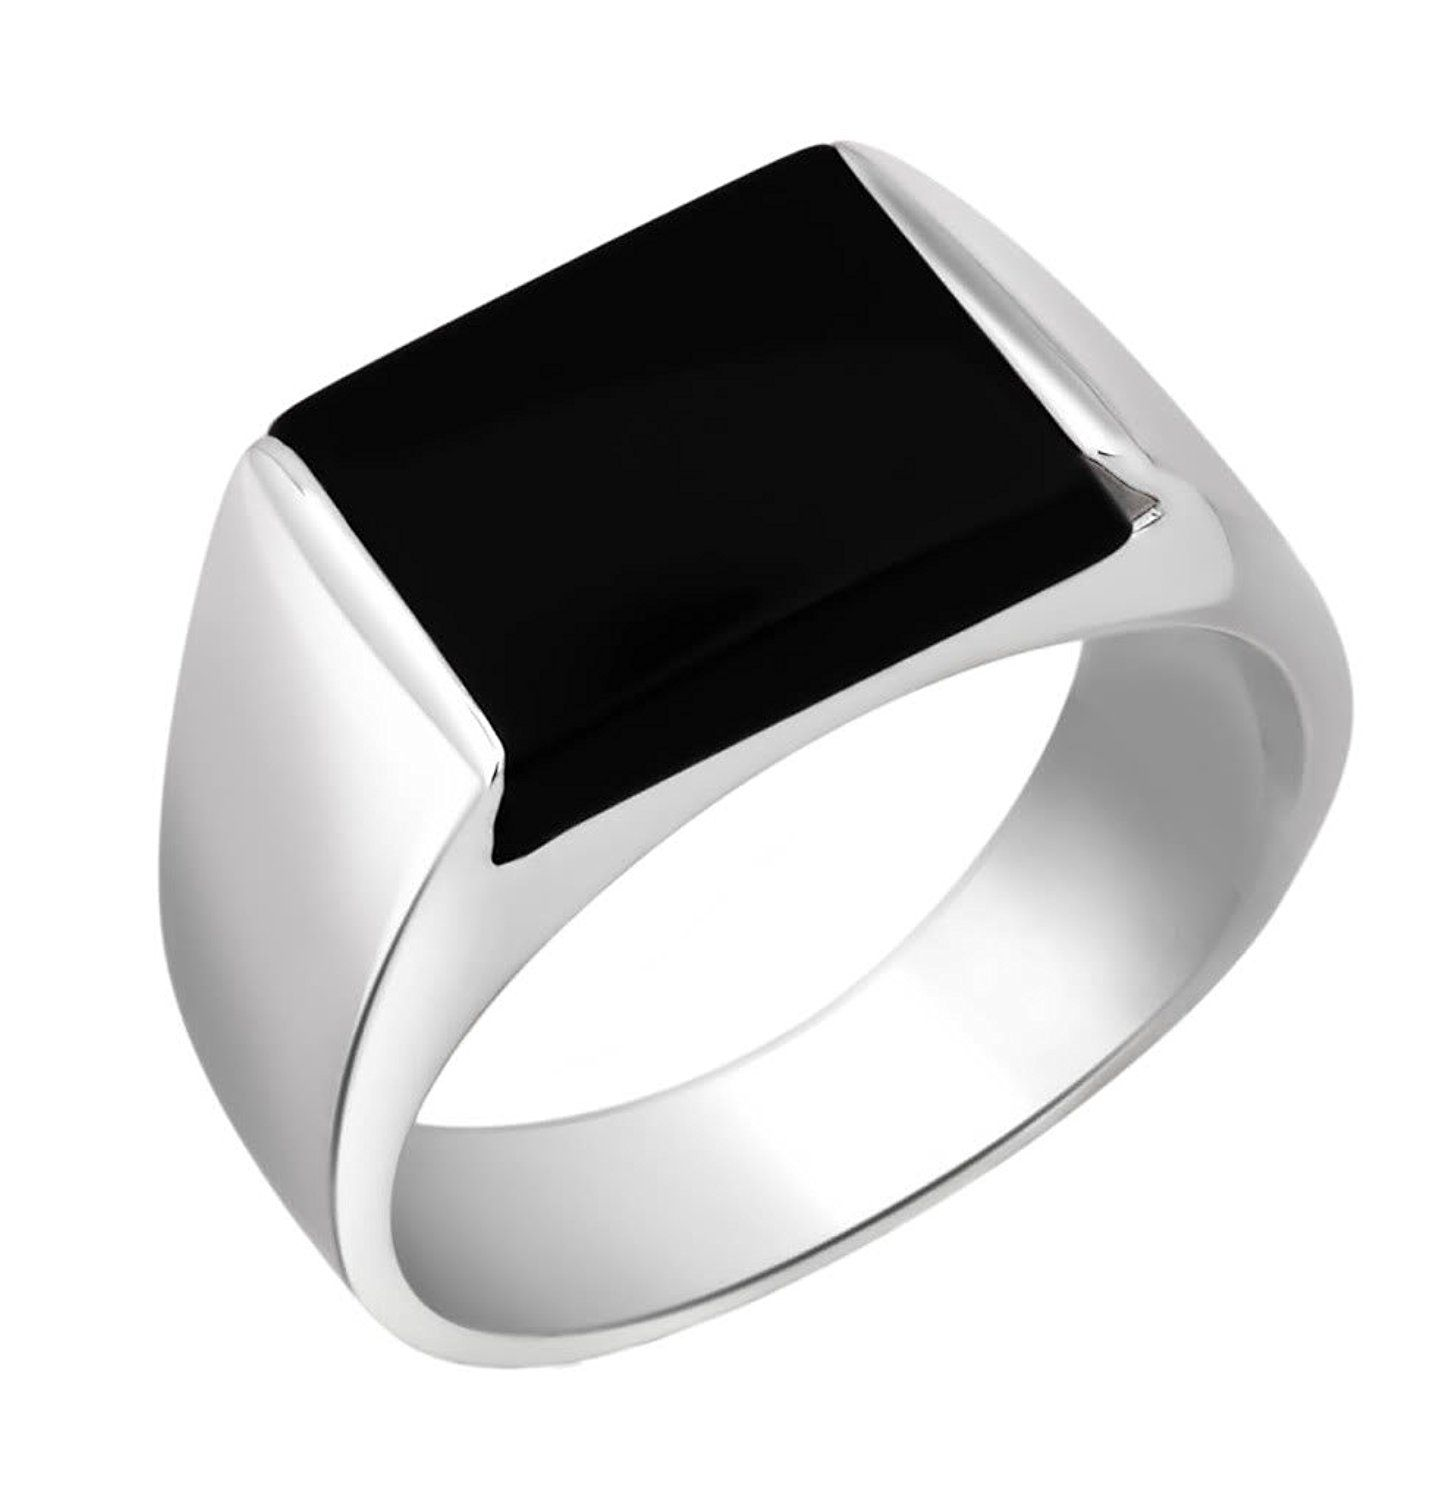 ring band center w wedding zoom black rings loading carbide raised mens tungsten